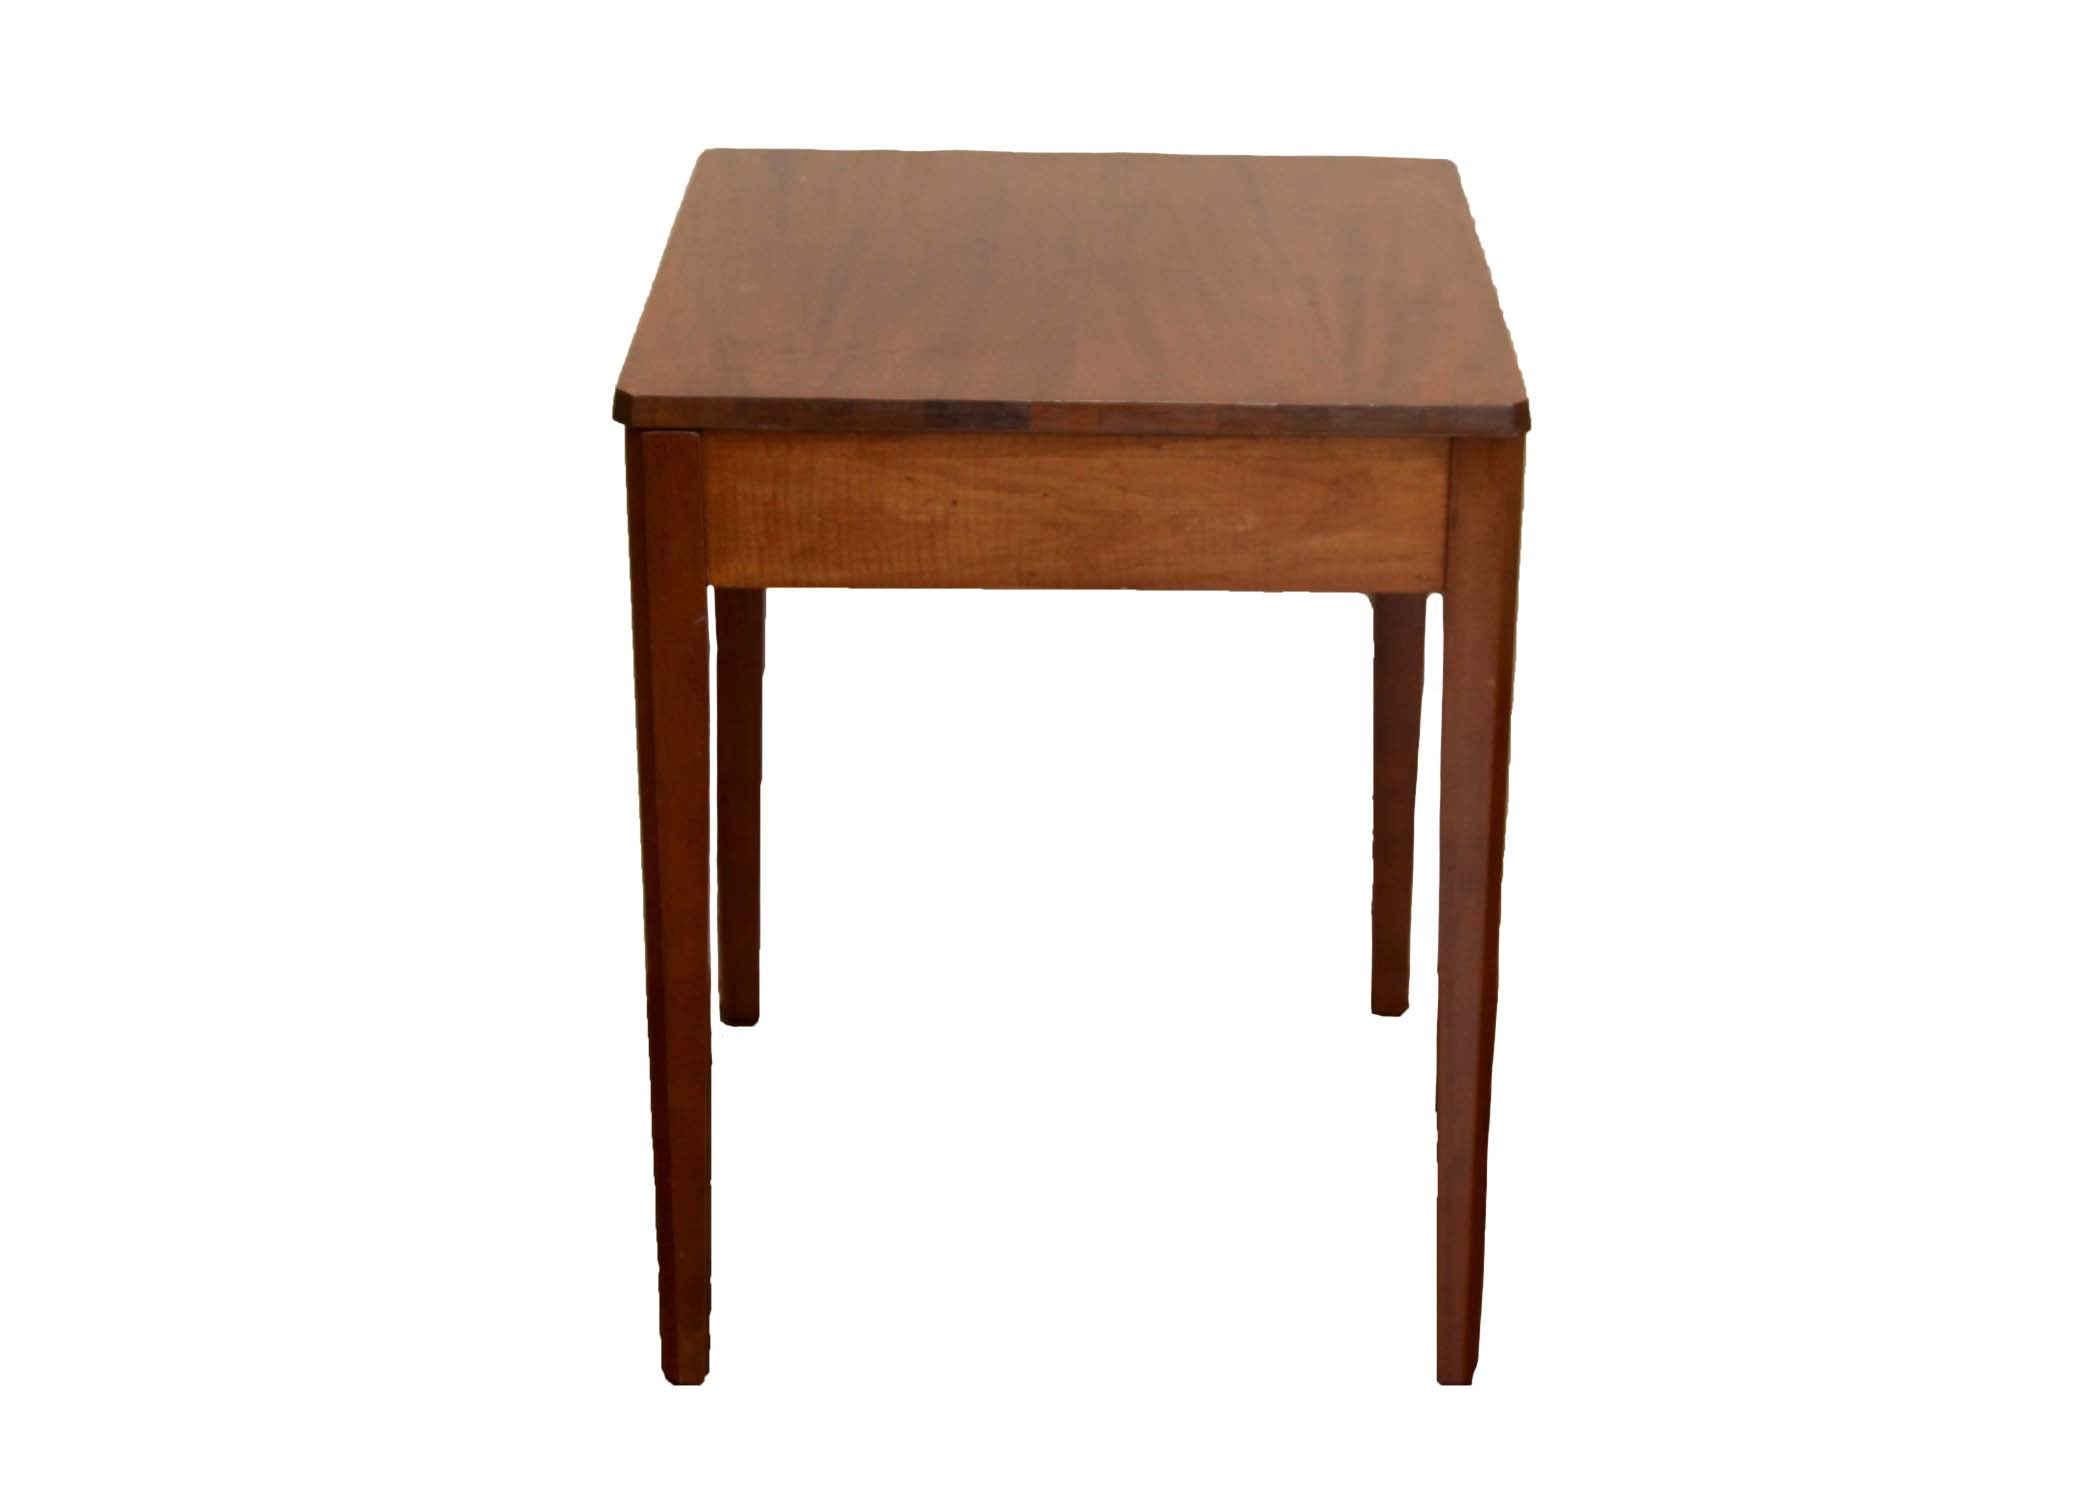 Vintage Wooden Swivel Top Television Table